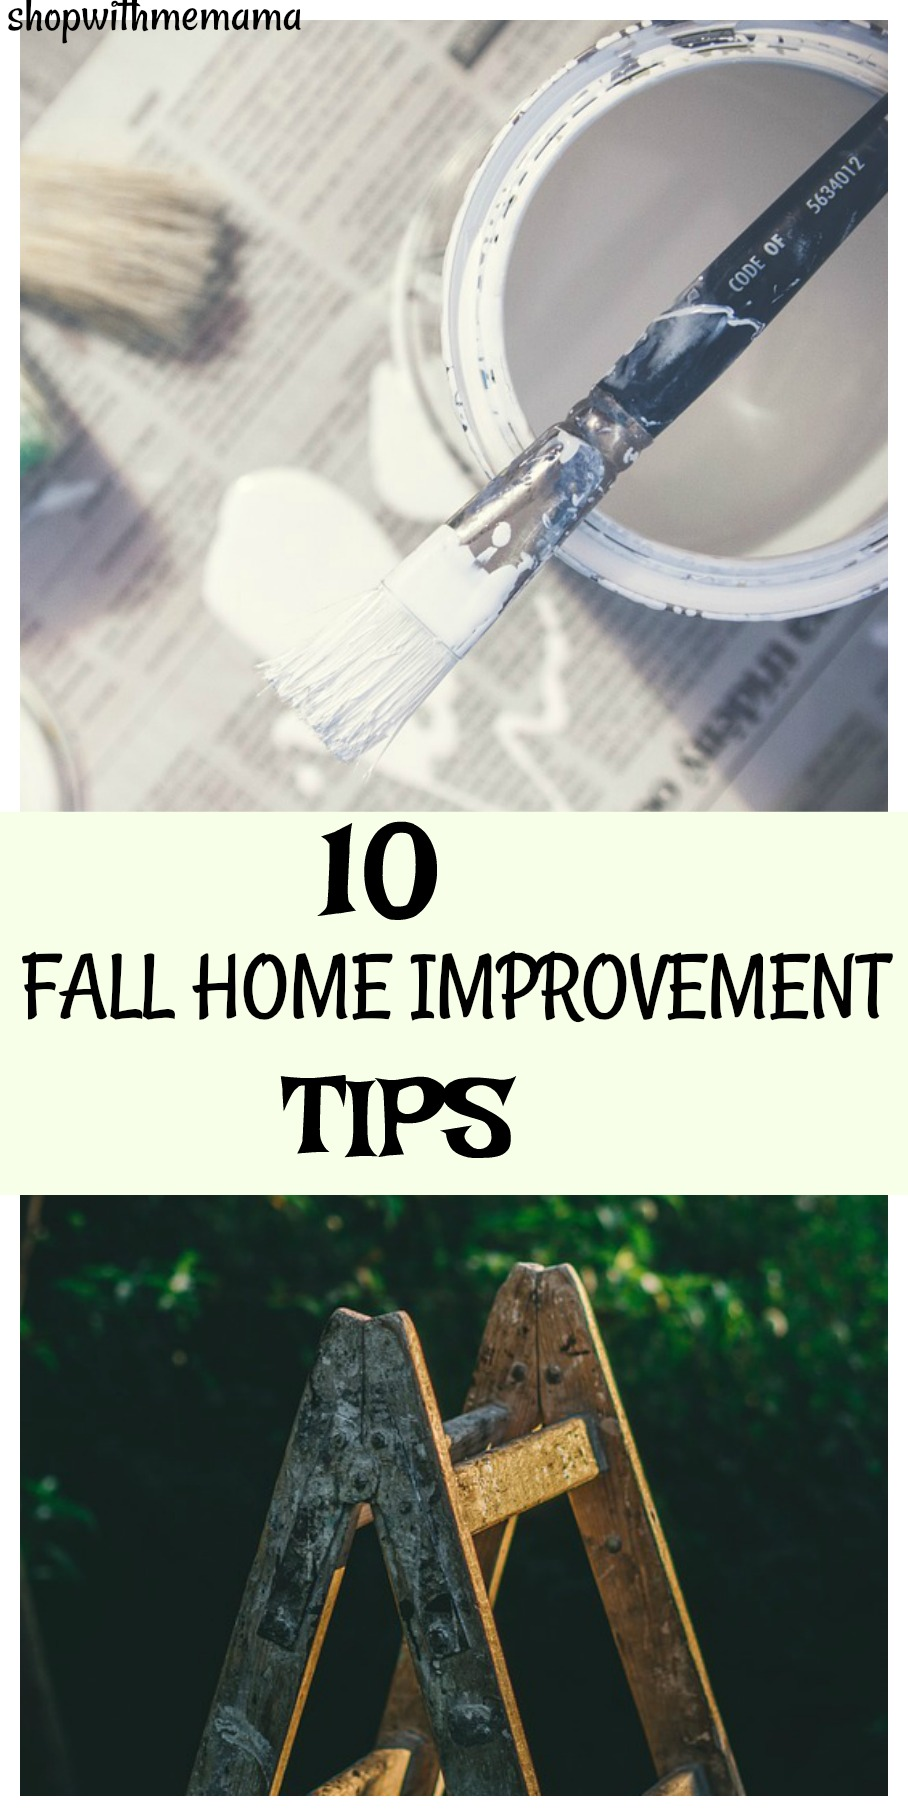 Fall Home Improvement Tips